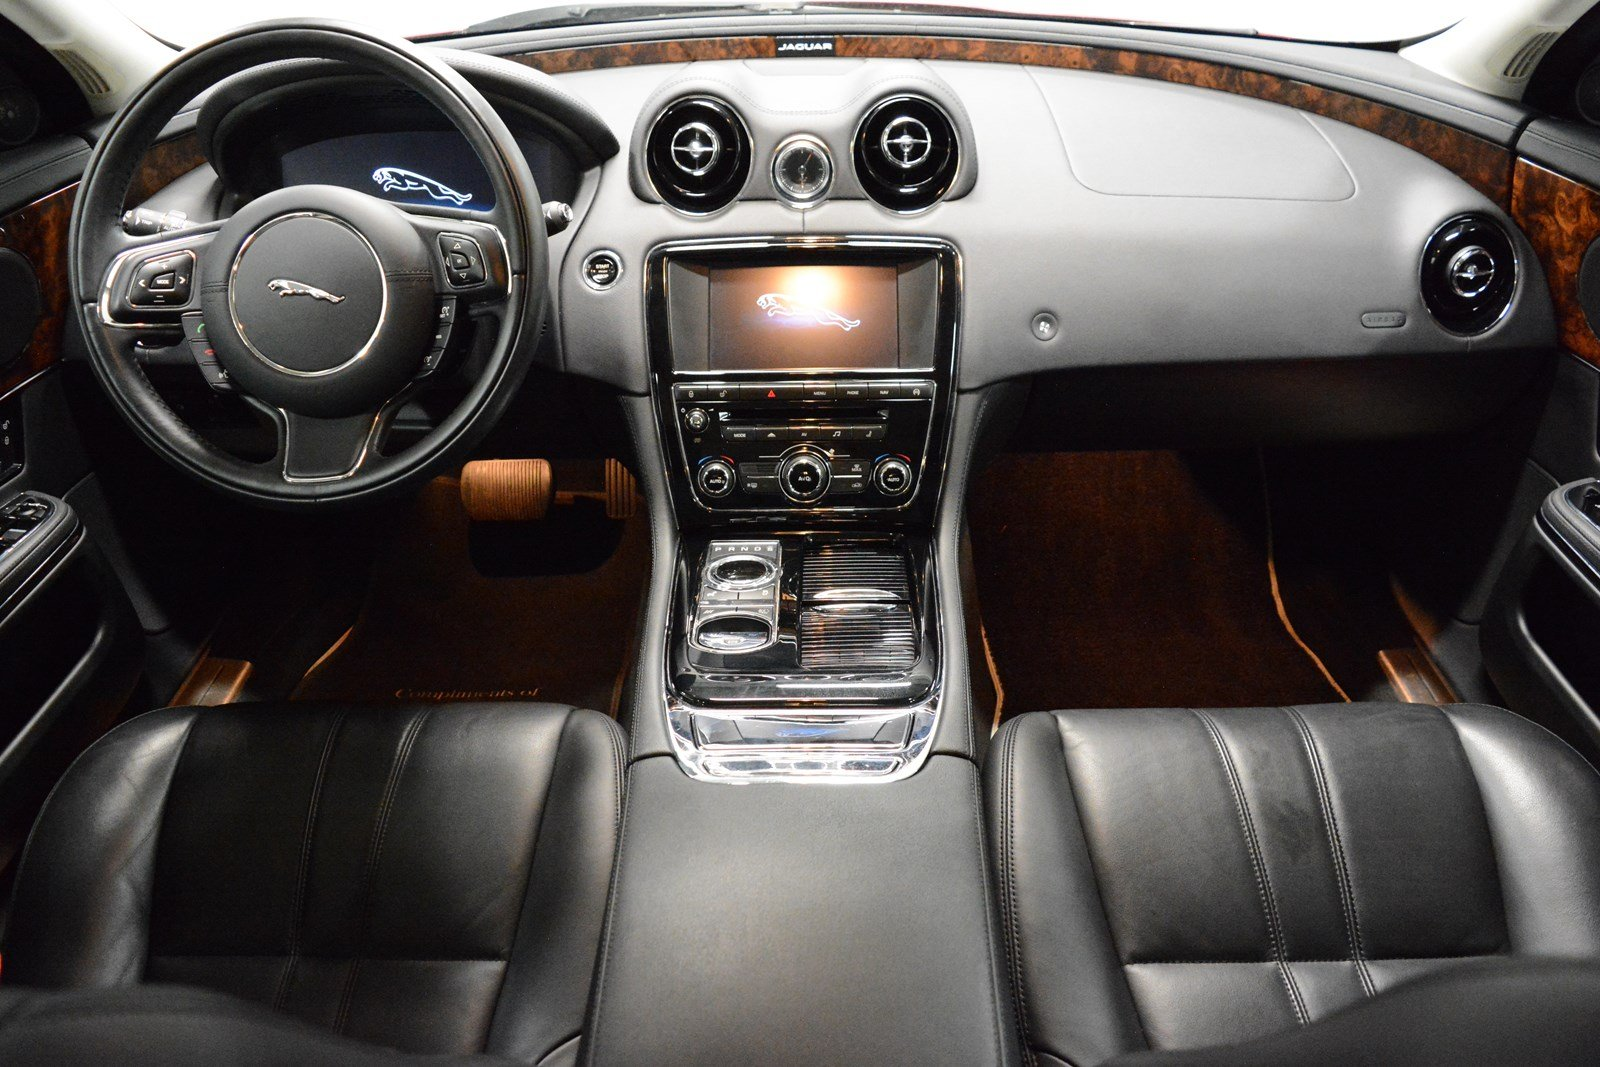 pre owned 2015 jaguar xj 4dr car in elmhurst j2372p jaguar elmhurst. Black Bedroom Furniture Sets. Home Design Ideas